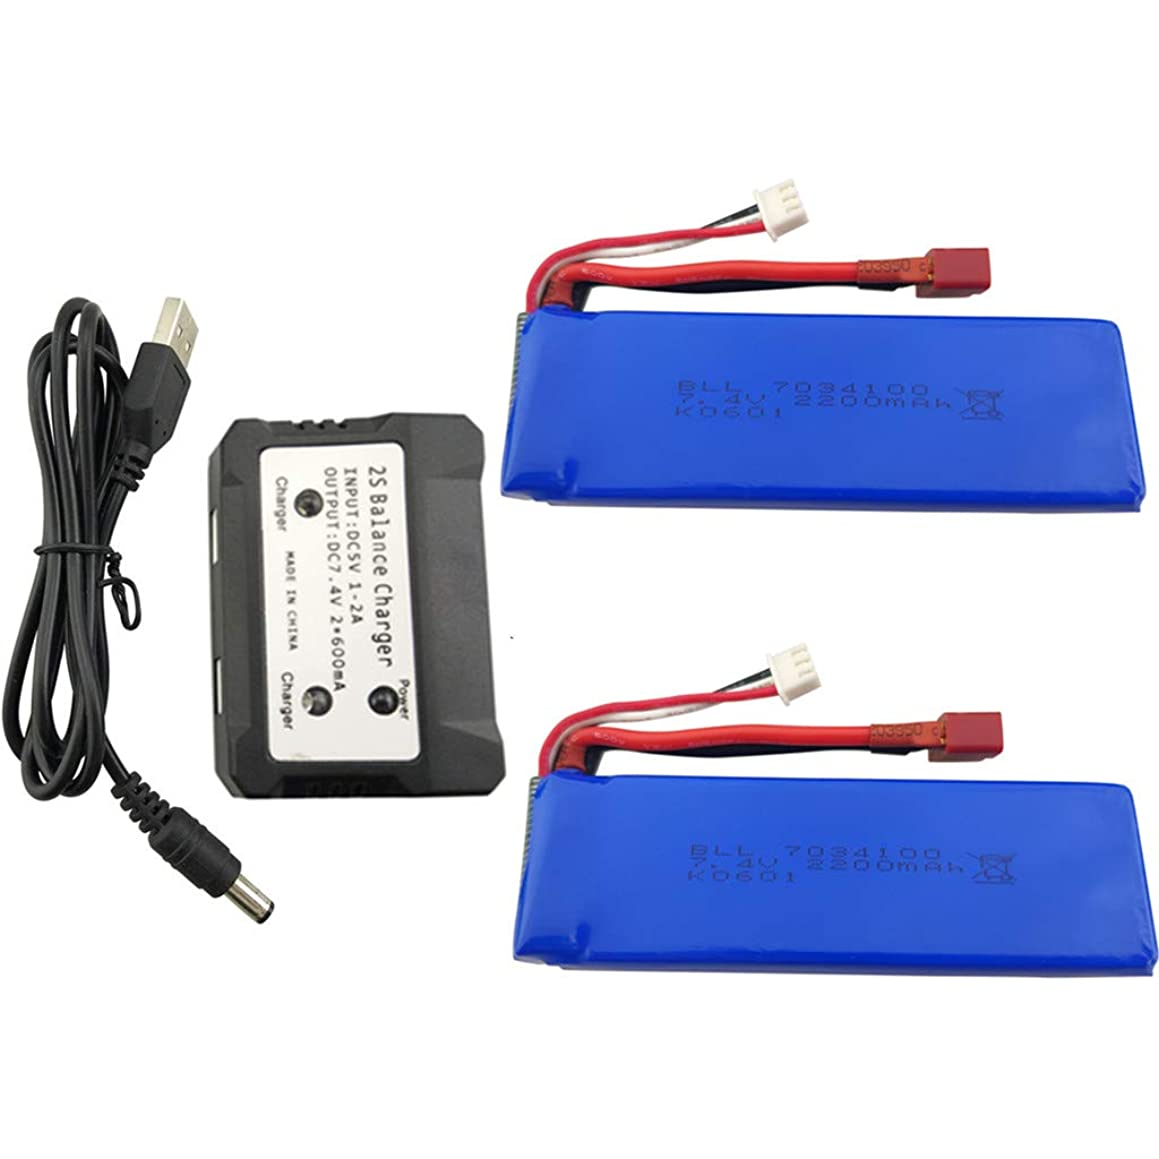 sea jump 2PCS 7.4V 2200mAh Lithium Battery + 2in1 Charger for WLtoys K949 10428 10428-A L202 RC High-Speed Remote Control Car Upgraded Lithium Battery High-Rate T-Type Plug Battery